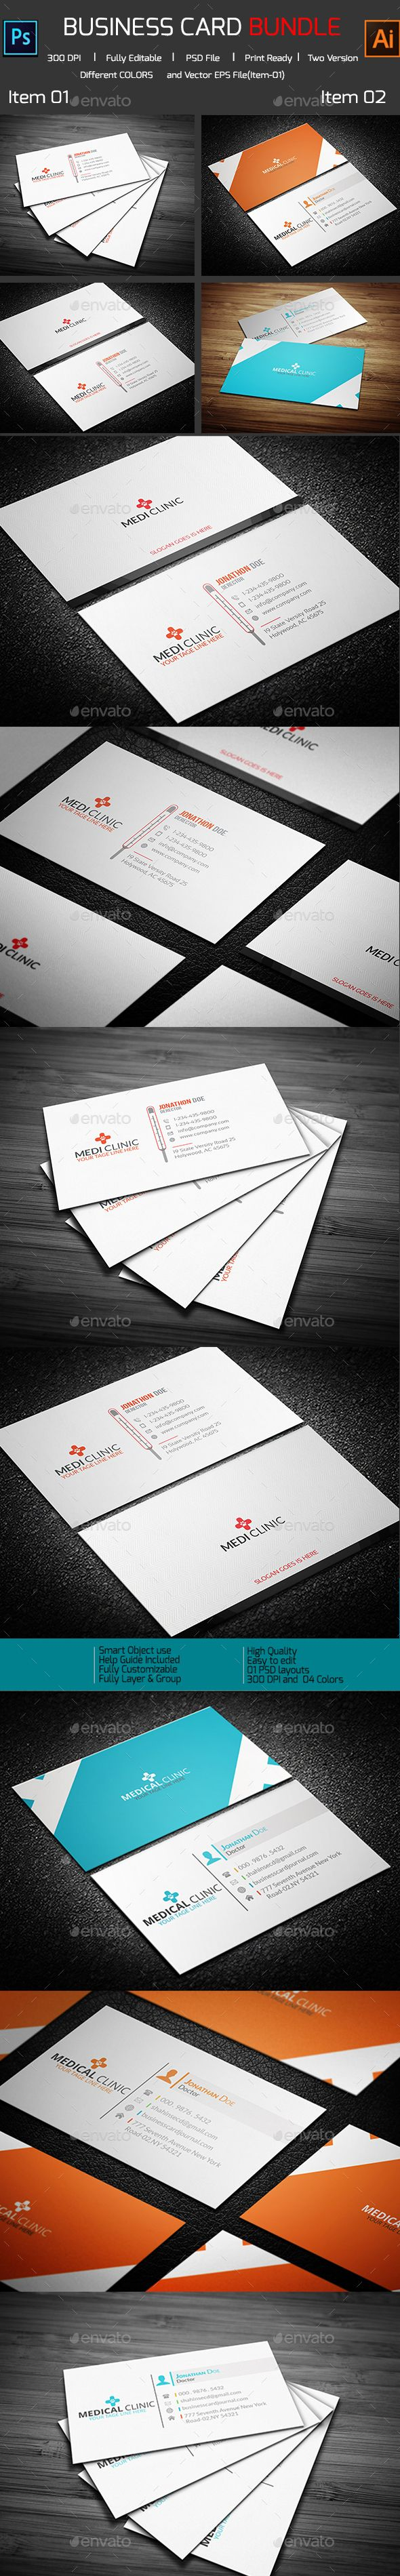 23 Best Business Card Design Images On Pinterest Business Card